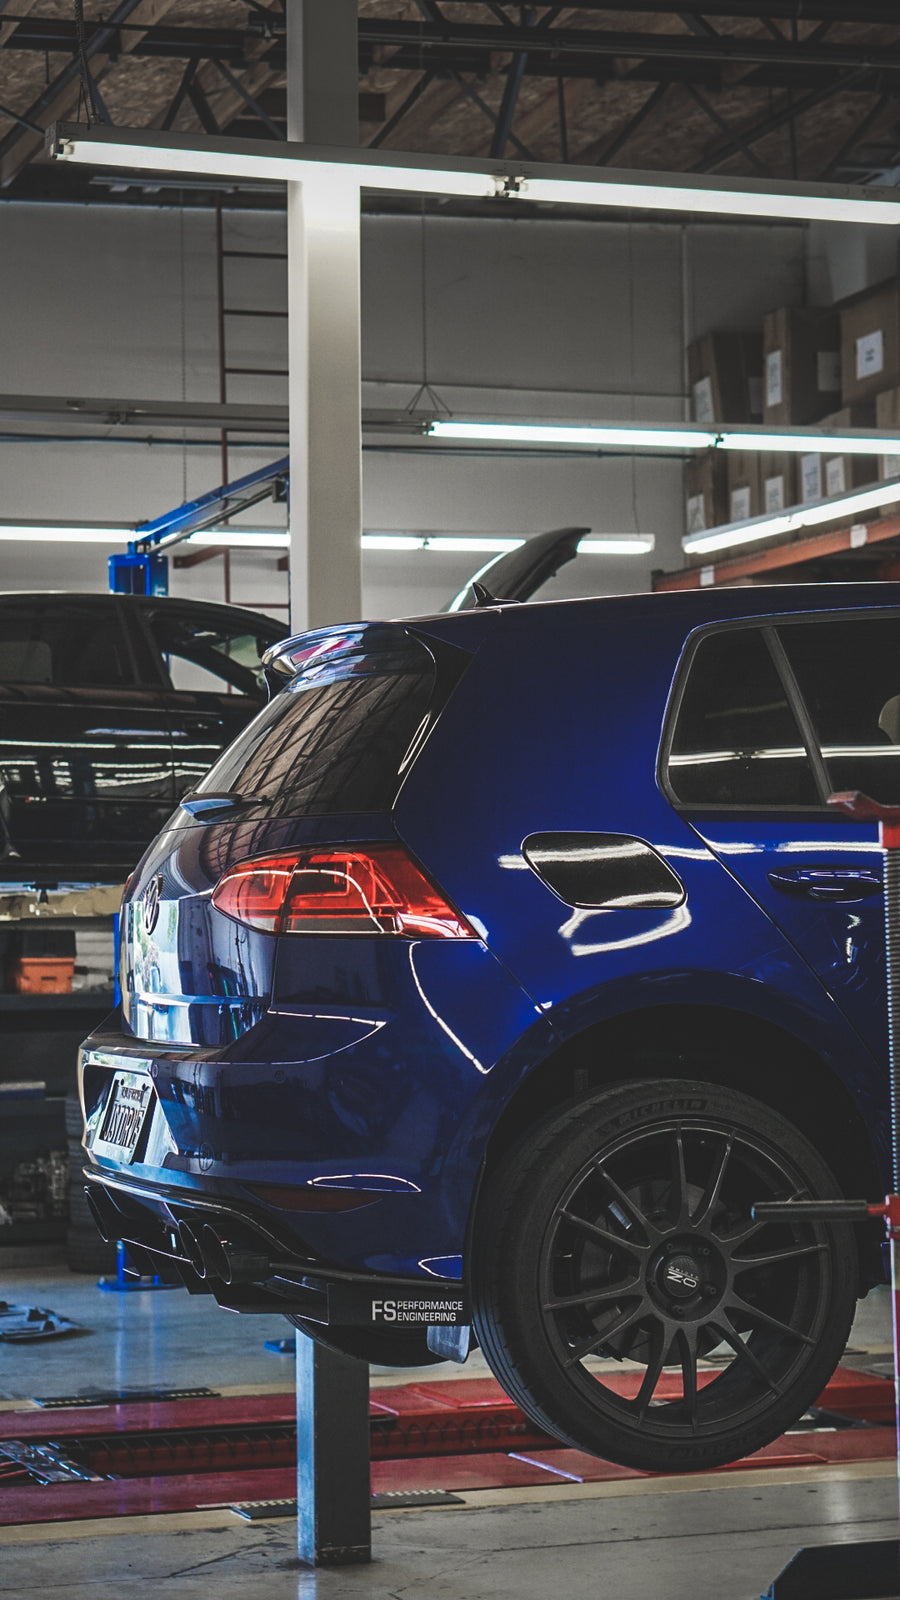 Volkswagen MK7 (2015-2017) Golf R Rear Diffuser - FS Performance Engineering